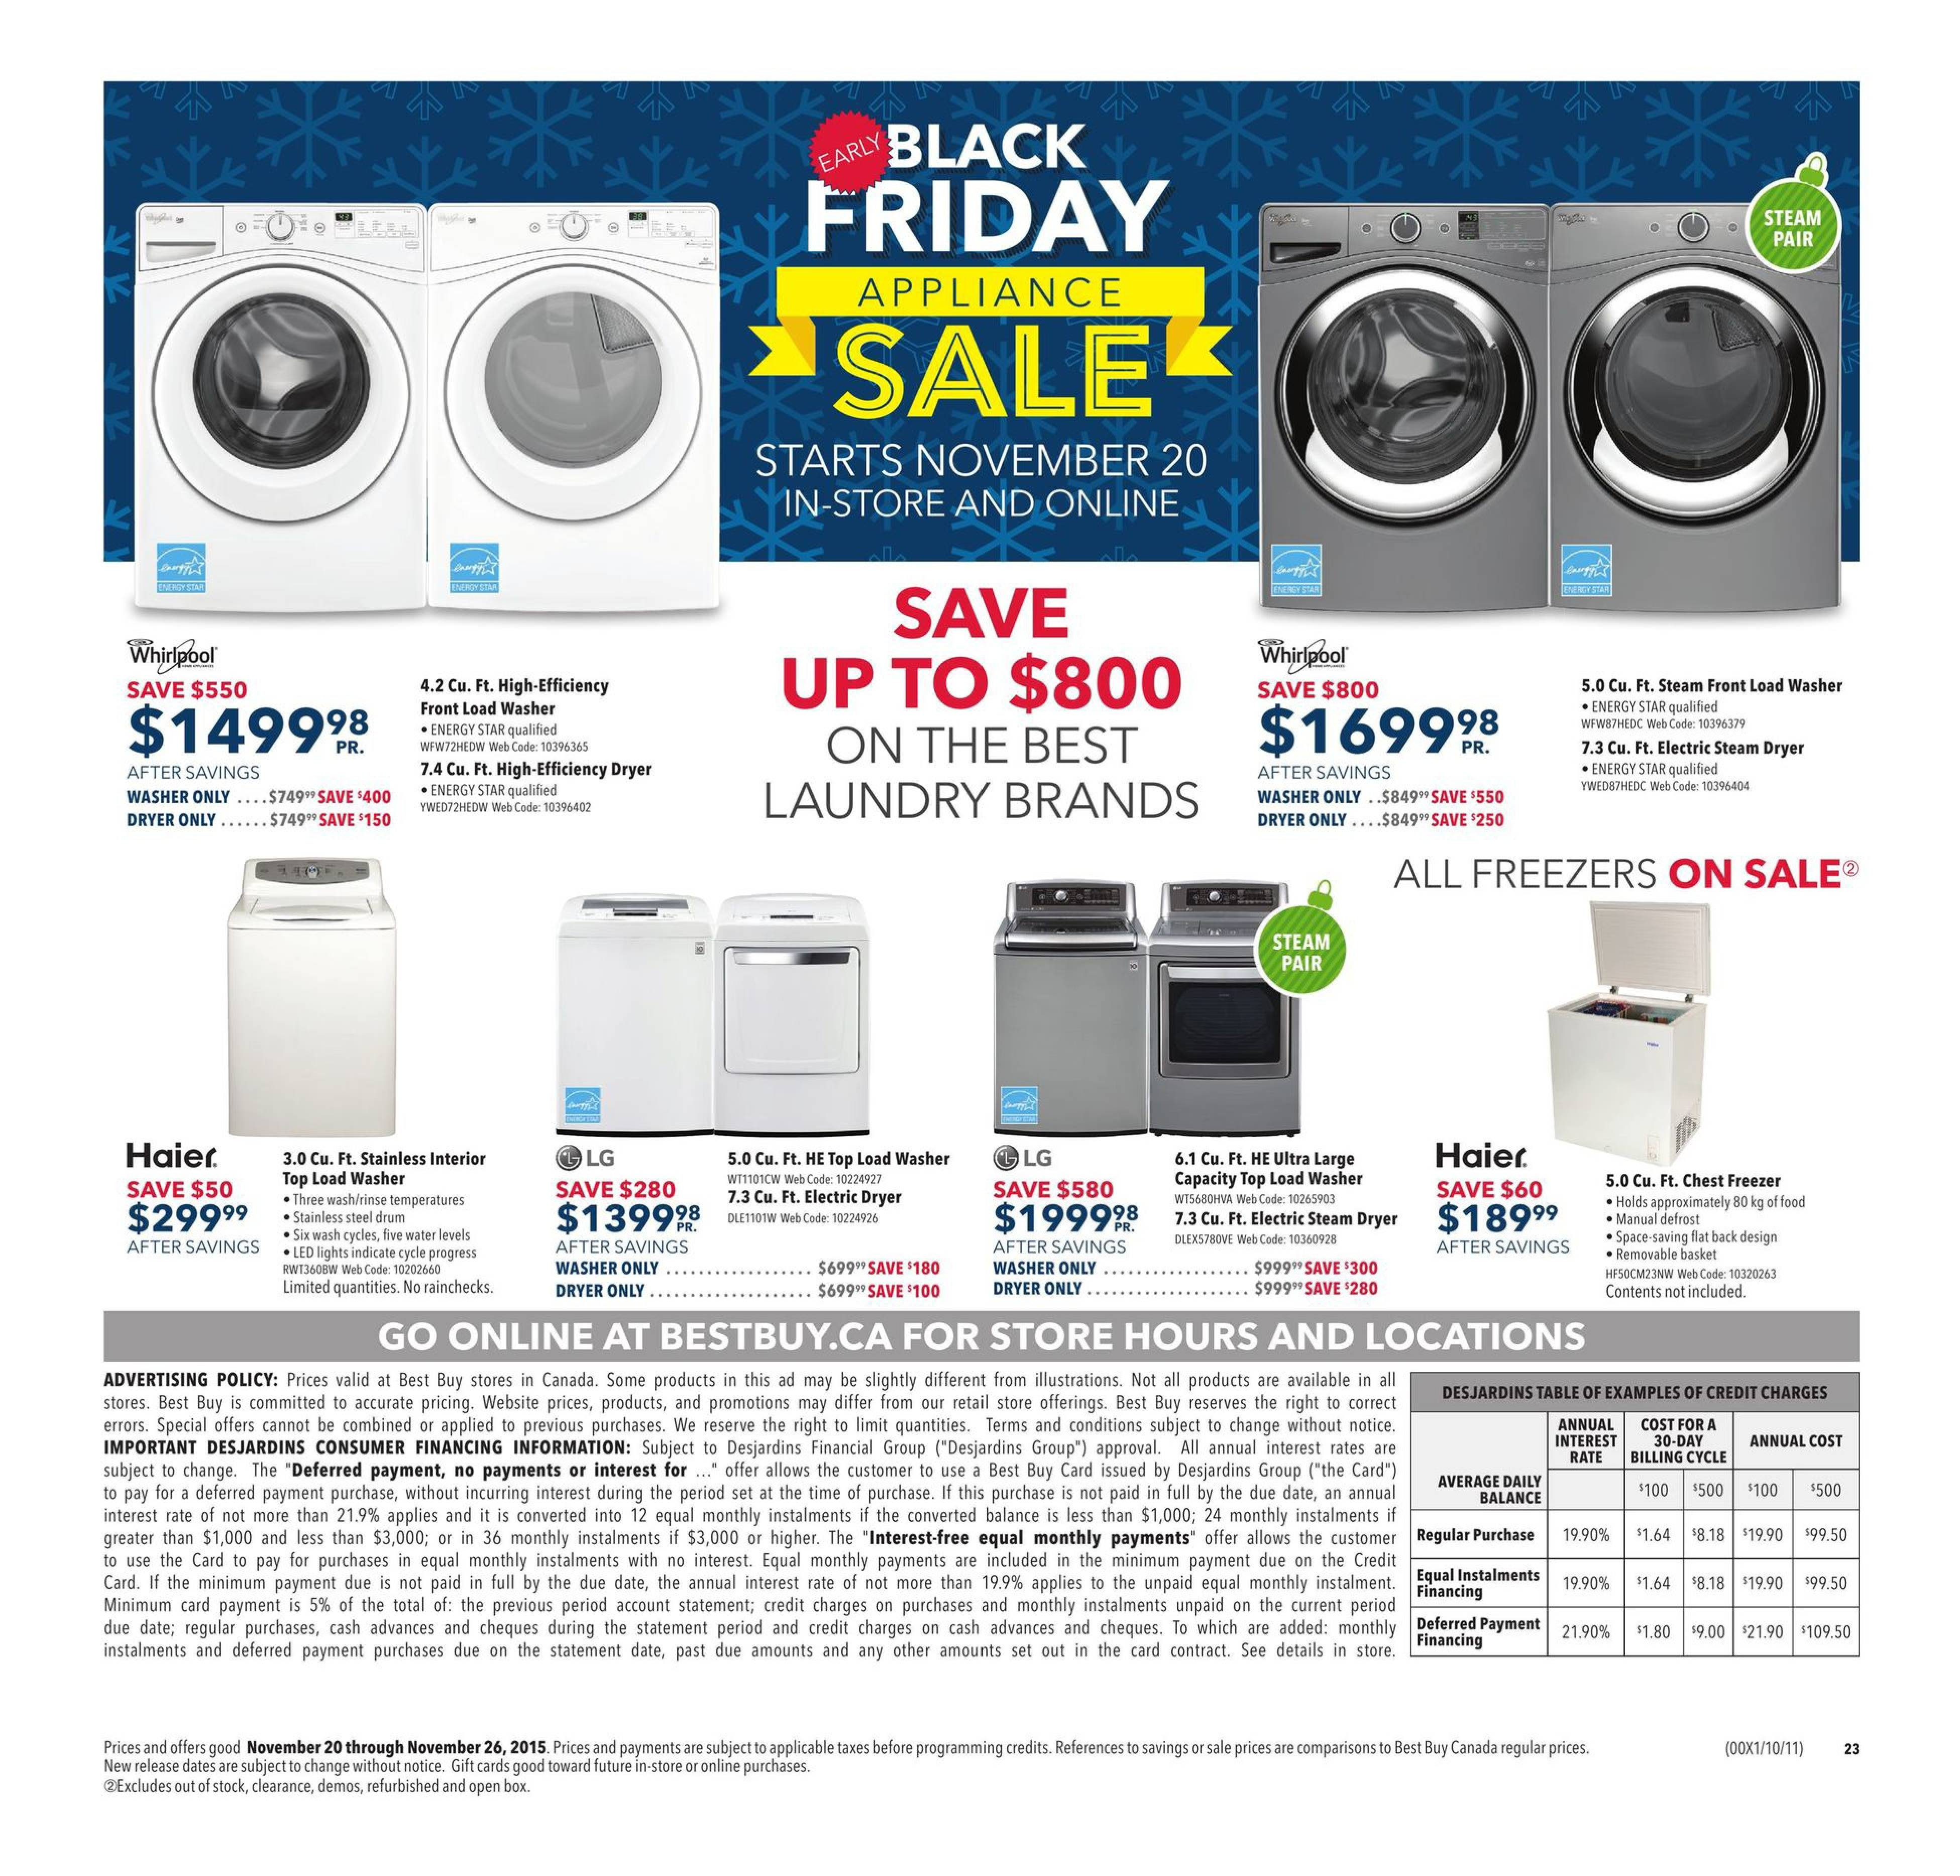 Best Buy Weekly Flyer - Weekly - Early Black Friday Appliance Sale